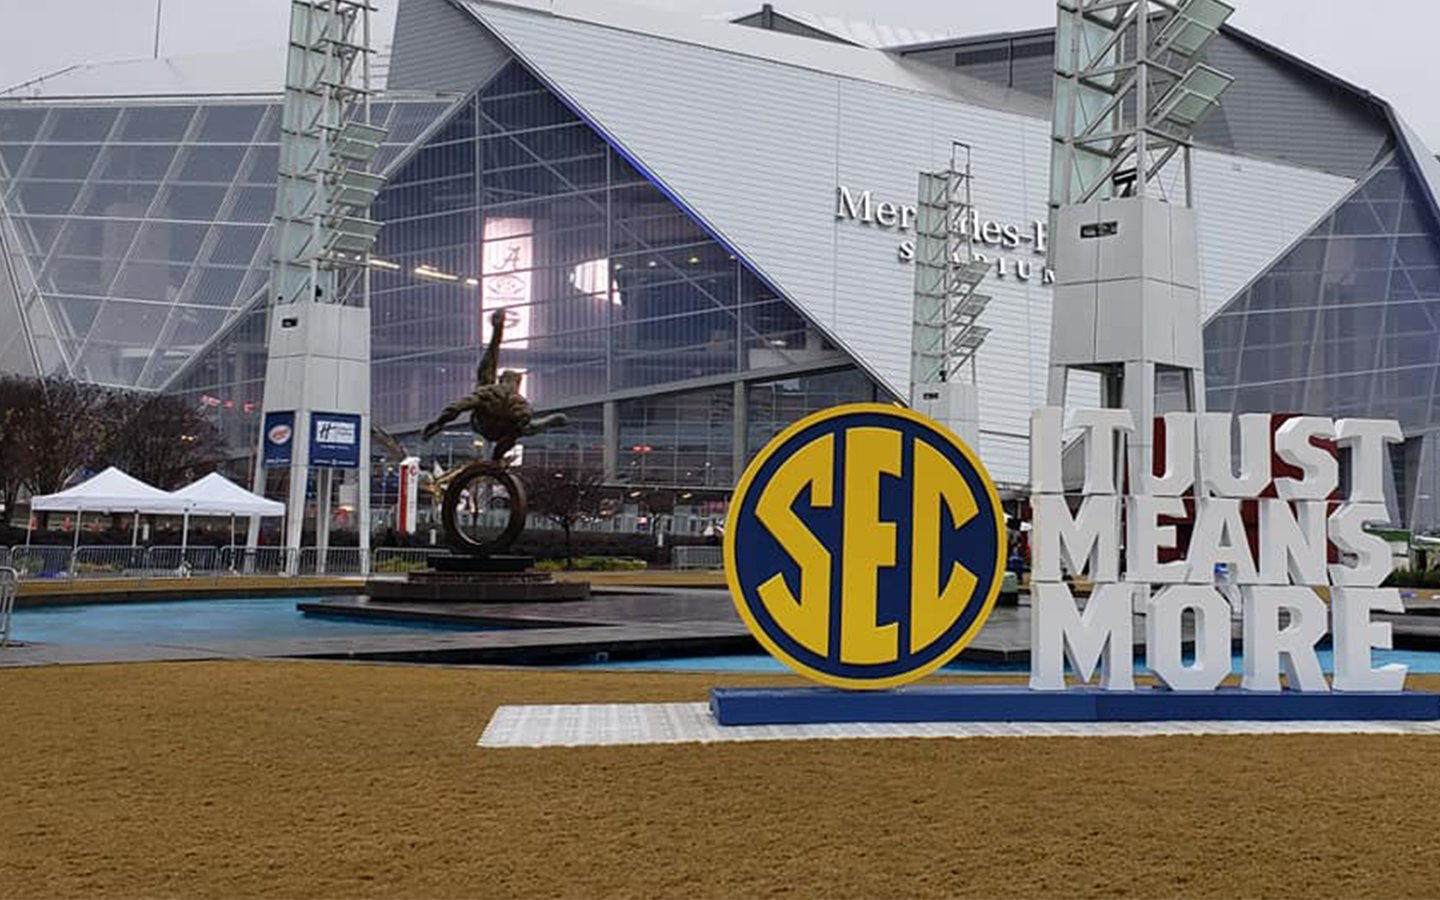 Mercedes-Benz Stadium in Atlanta prior to the 2018 SEC Championship Game. The Southeastern Conference announced on Friday that student-athletes would be allowed back on campus for voluntary workouts beginning June 8.